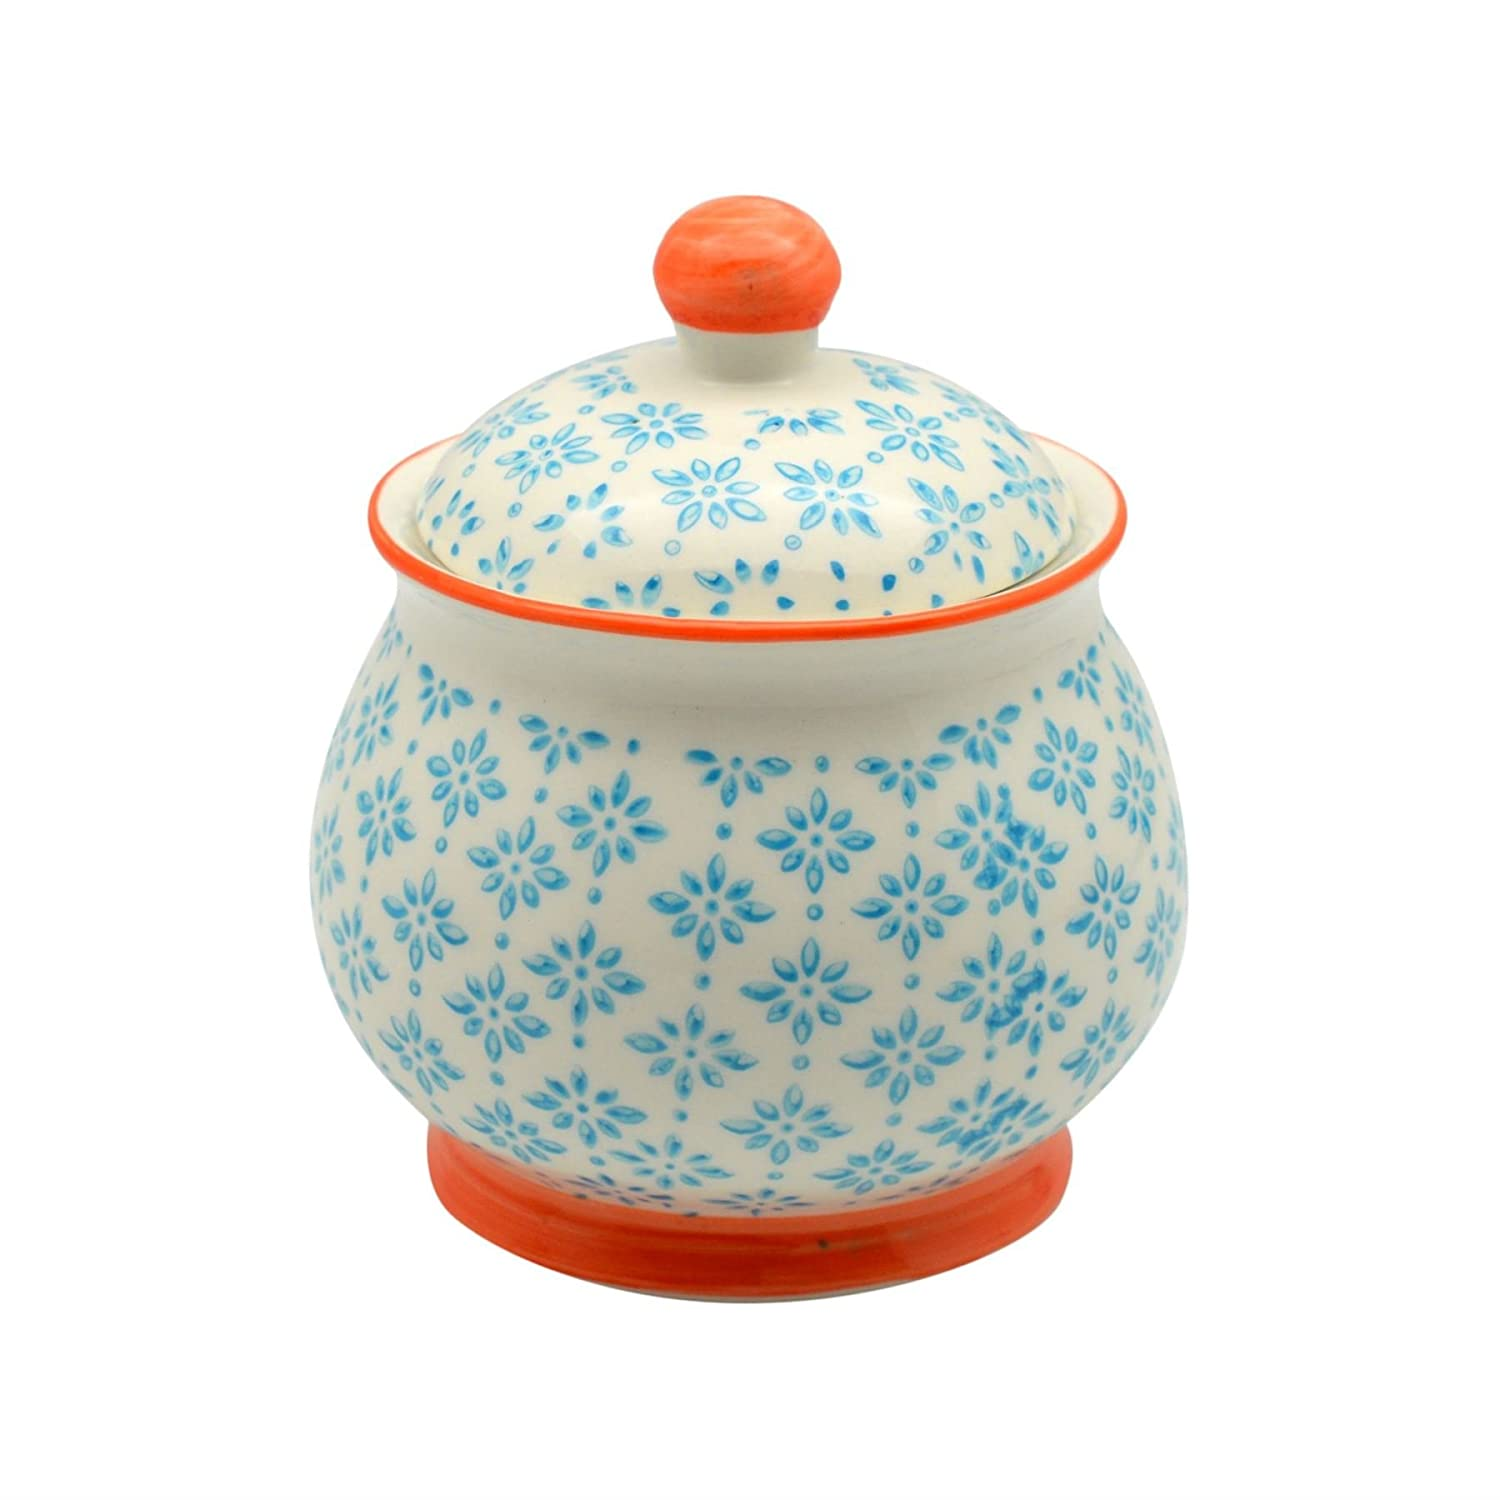 Patterned Sugar Bowl / Pot with Lid - Blue / Orange Nicola Spring